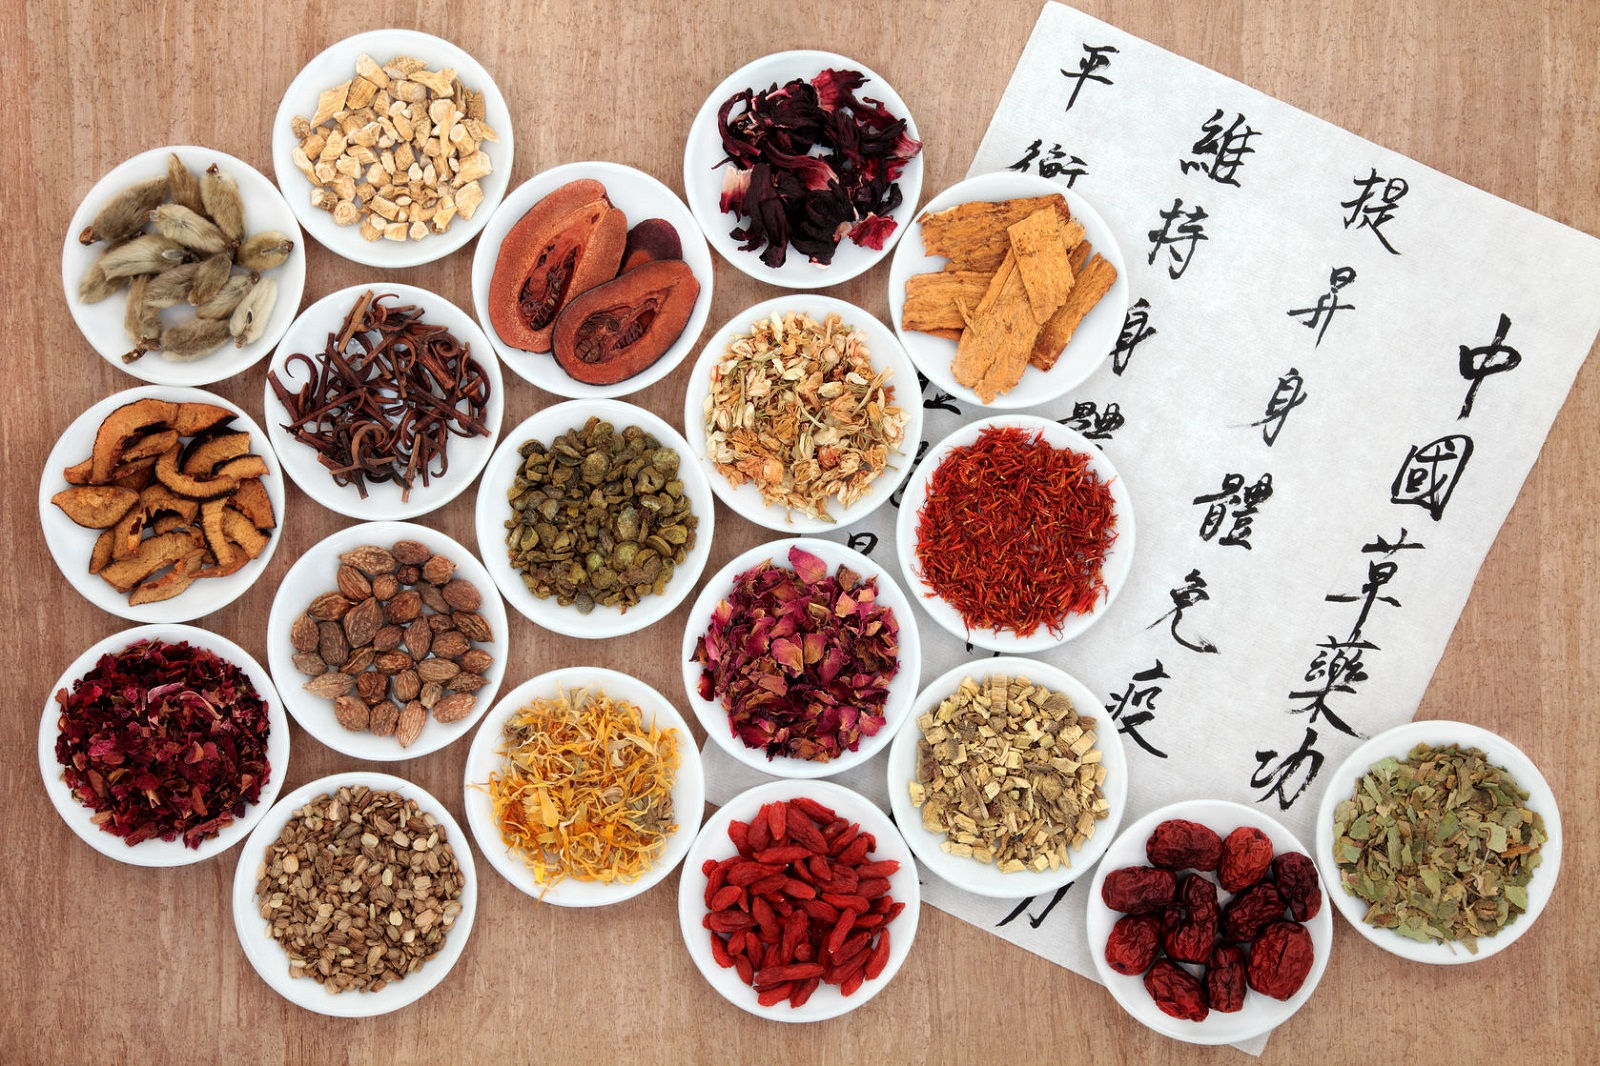 Chinese Medicine Clinic Hong Kong